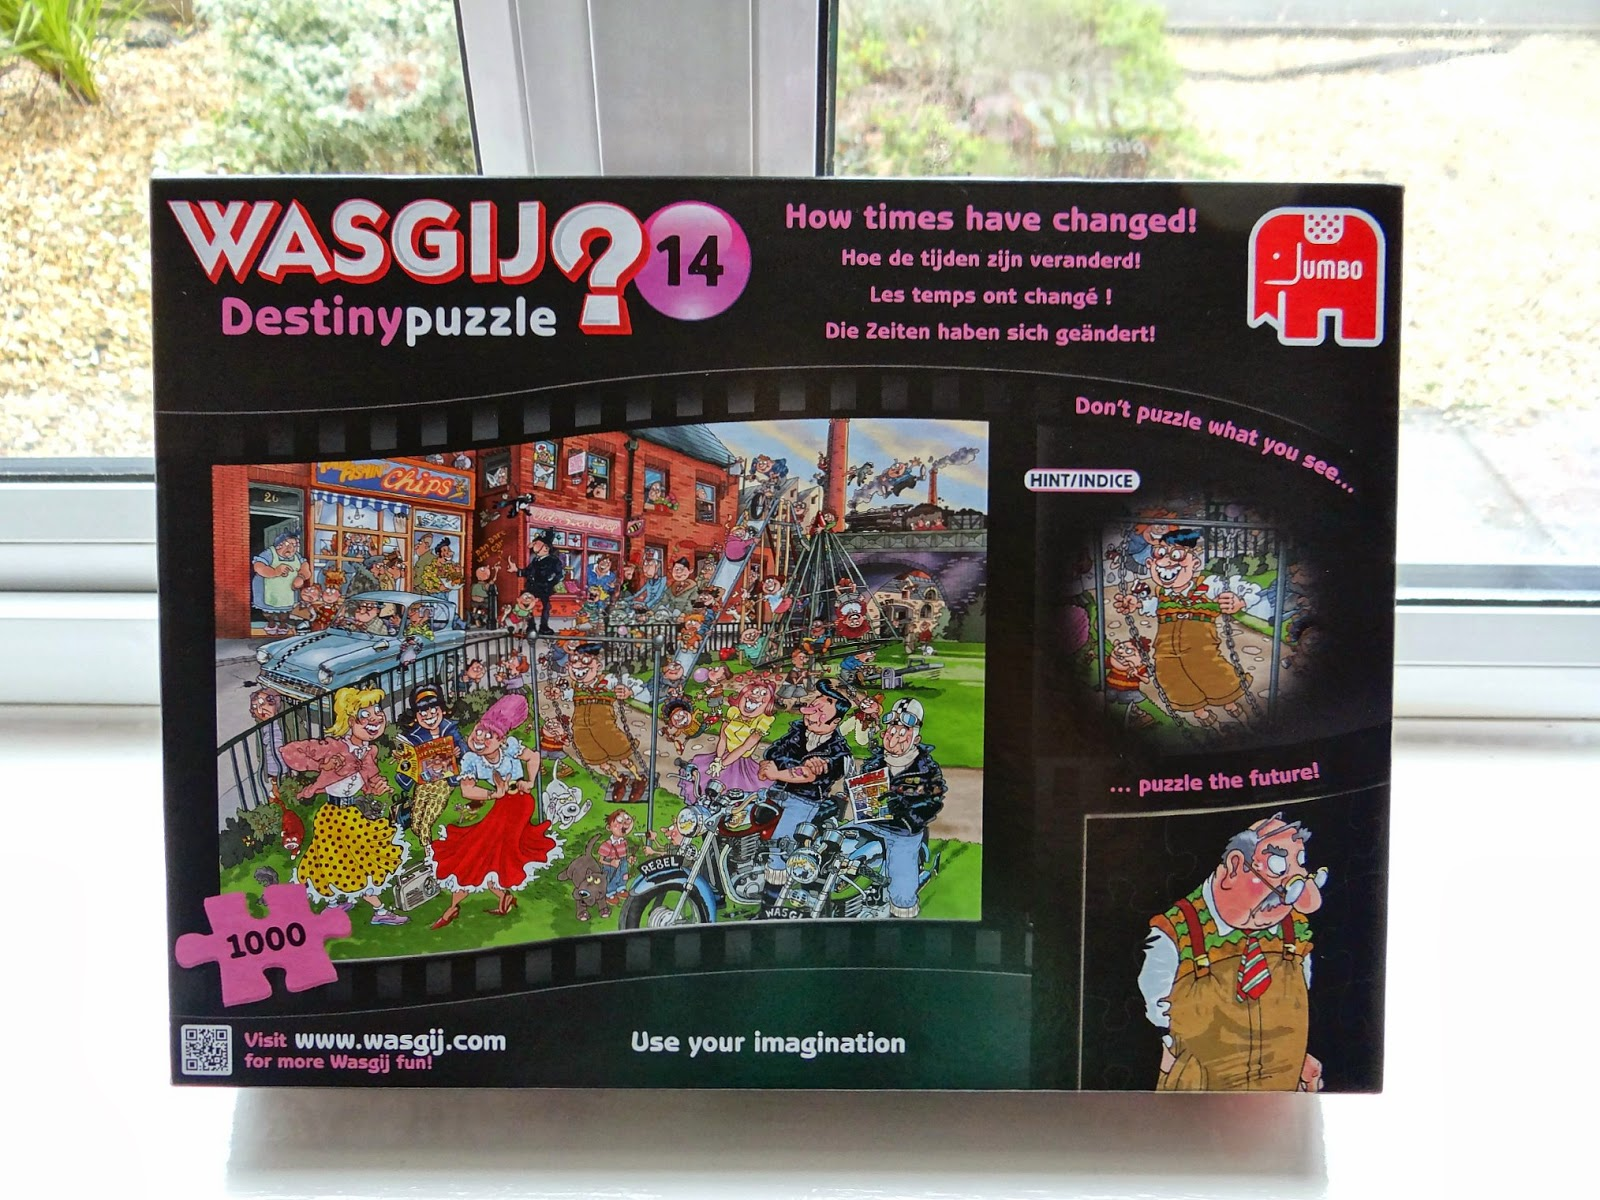 Wasgij Destiny 14: How TImes Have Changed, 1000 pieces puzzle, Jumbo Games Puzzle